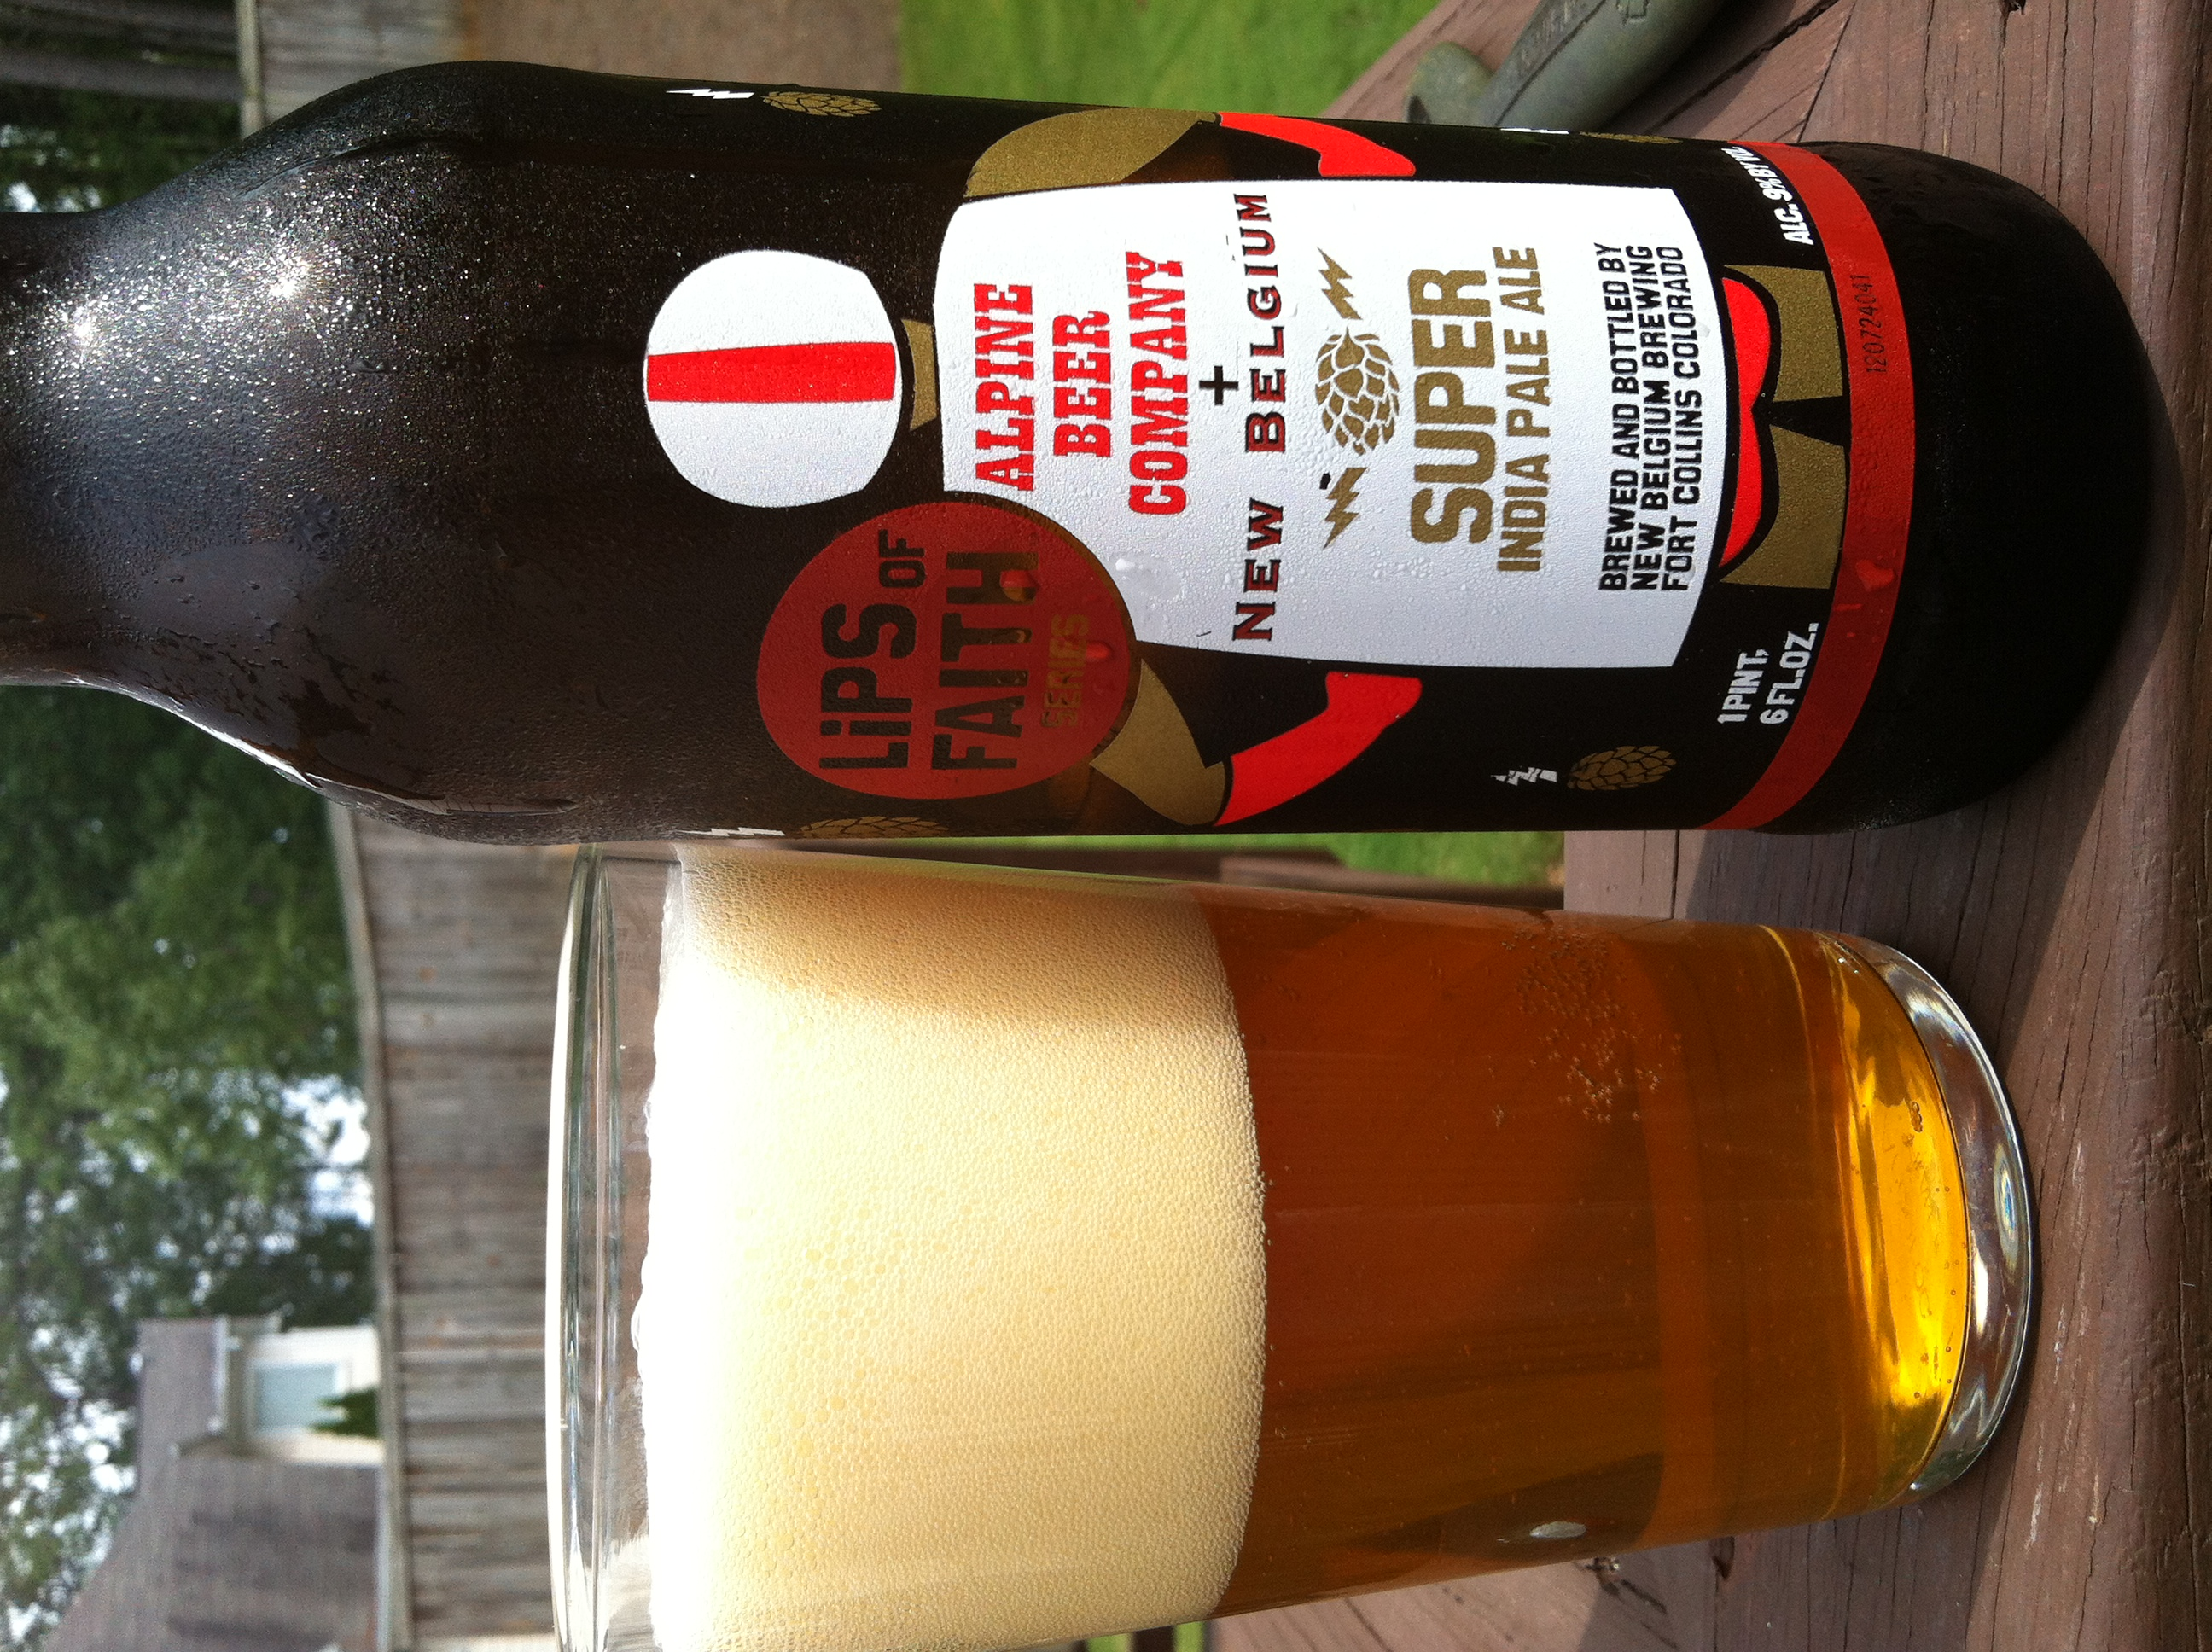 Beer Review: Alpine Beer Company and New Belgium Brewing Co